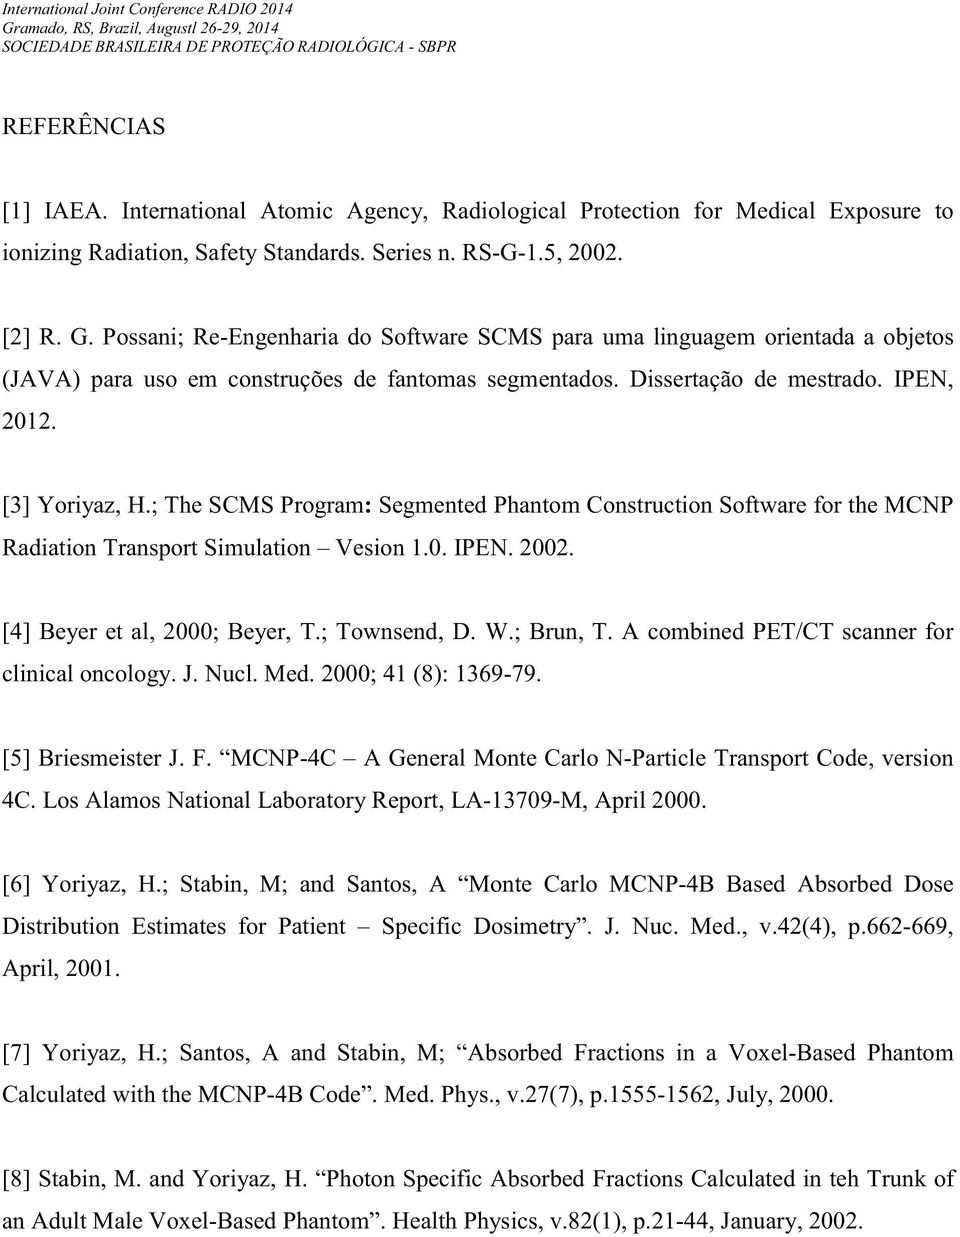 ; The SCMS Program: Segmented Phantom Construction Software for the MCNP Radiation Transport Simulation Vesion 1.0. IPEN. 2002. [4] Beyer et al, 2000; Beyer, T.; Townsend, D. W.; Brun, T.